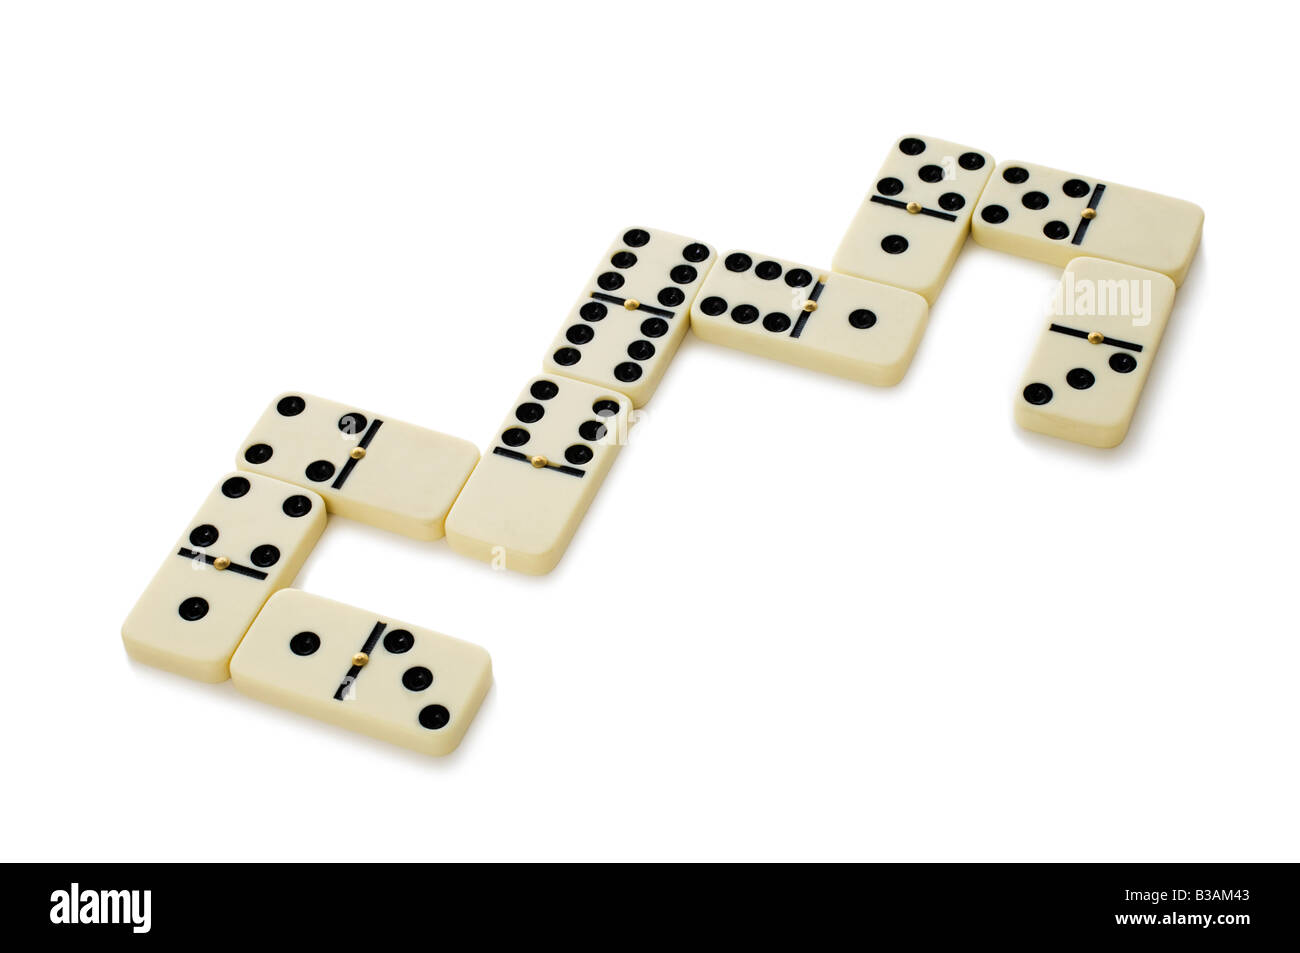 Dominoes game Stock Photo, Royalty Free Image: 19289651 - Alamy